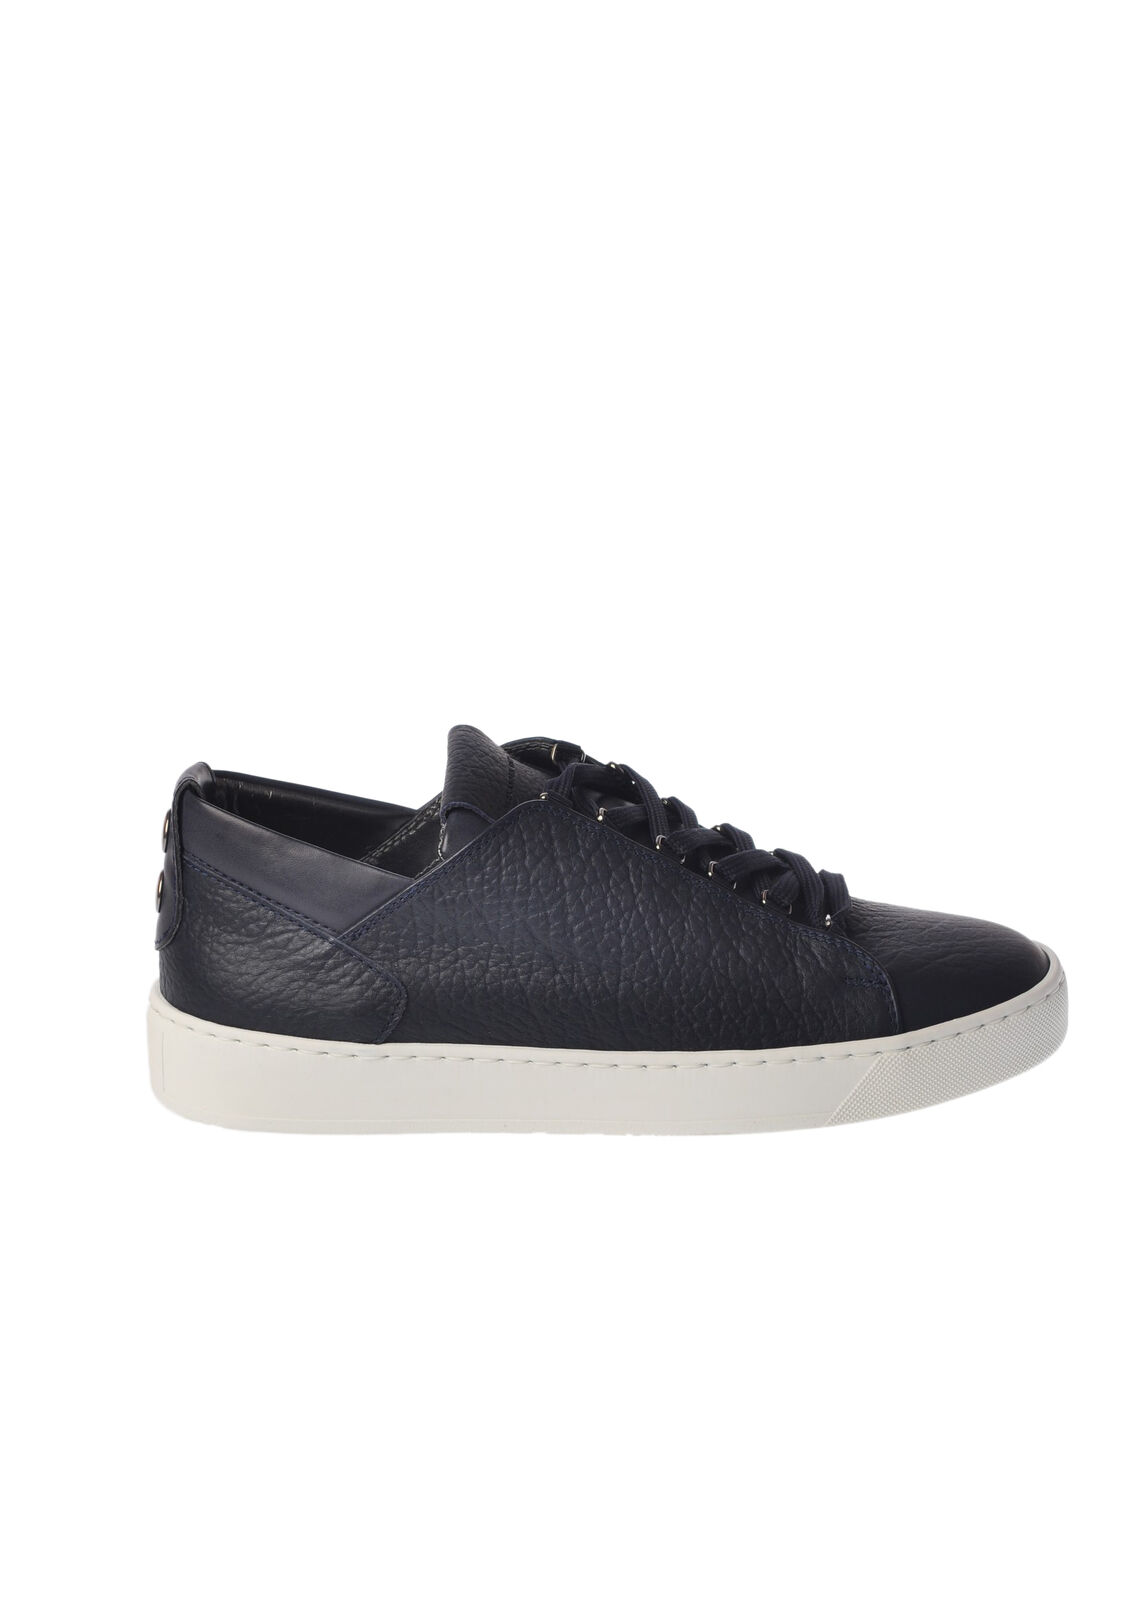 Alexander Smith - shoes-Sneakers low - Man - bluee - 4992215G180708